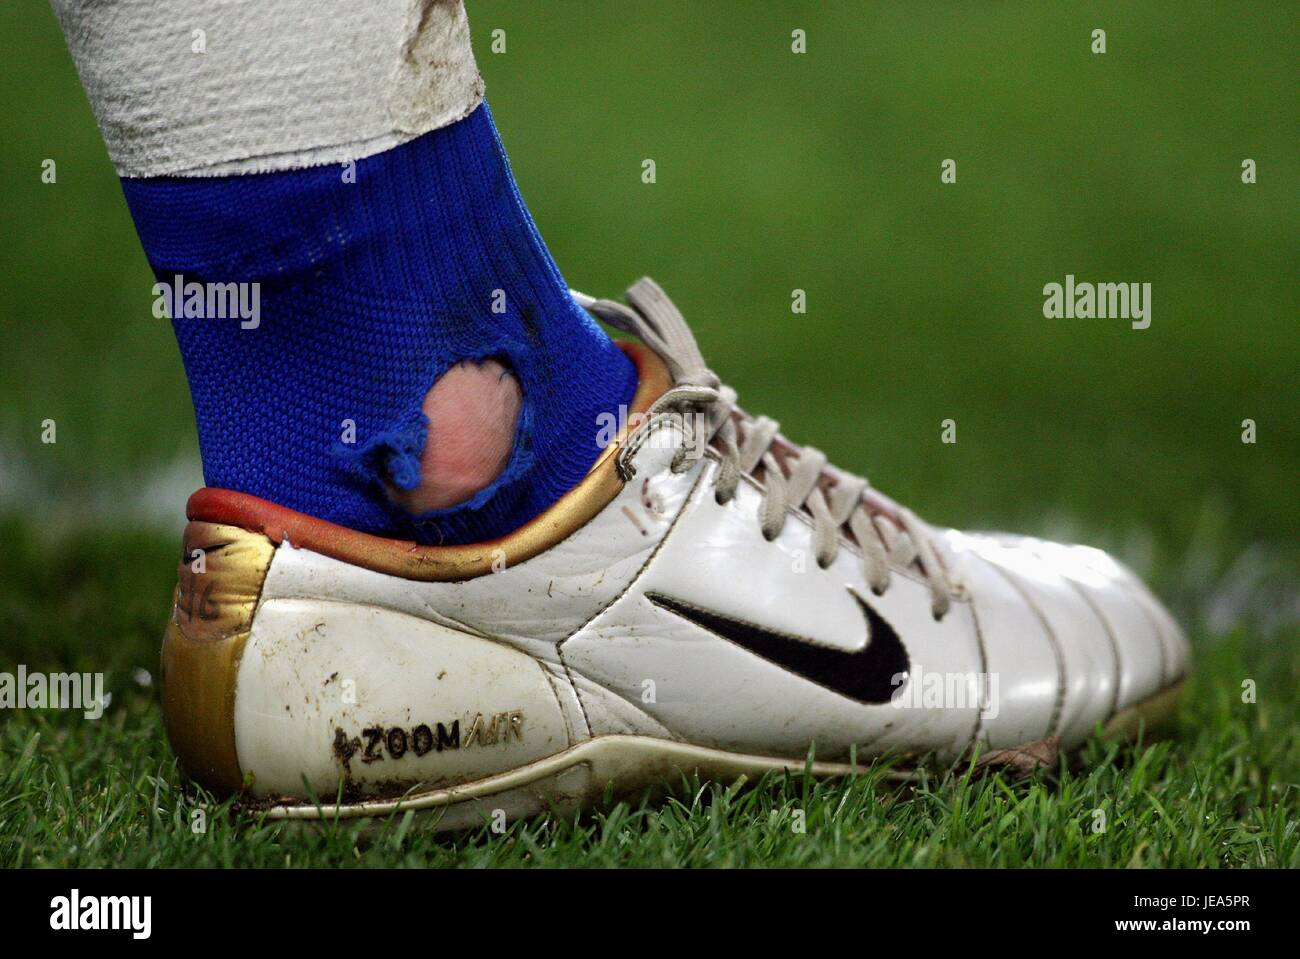 amp; Nike Football Photos Images Alamy 0q0XPY7